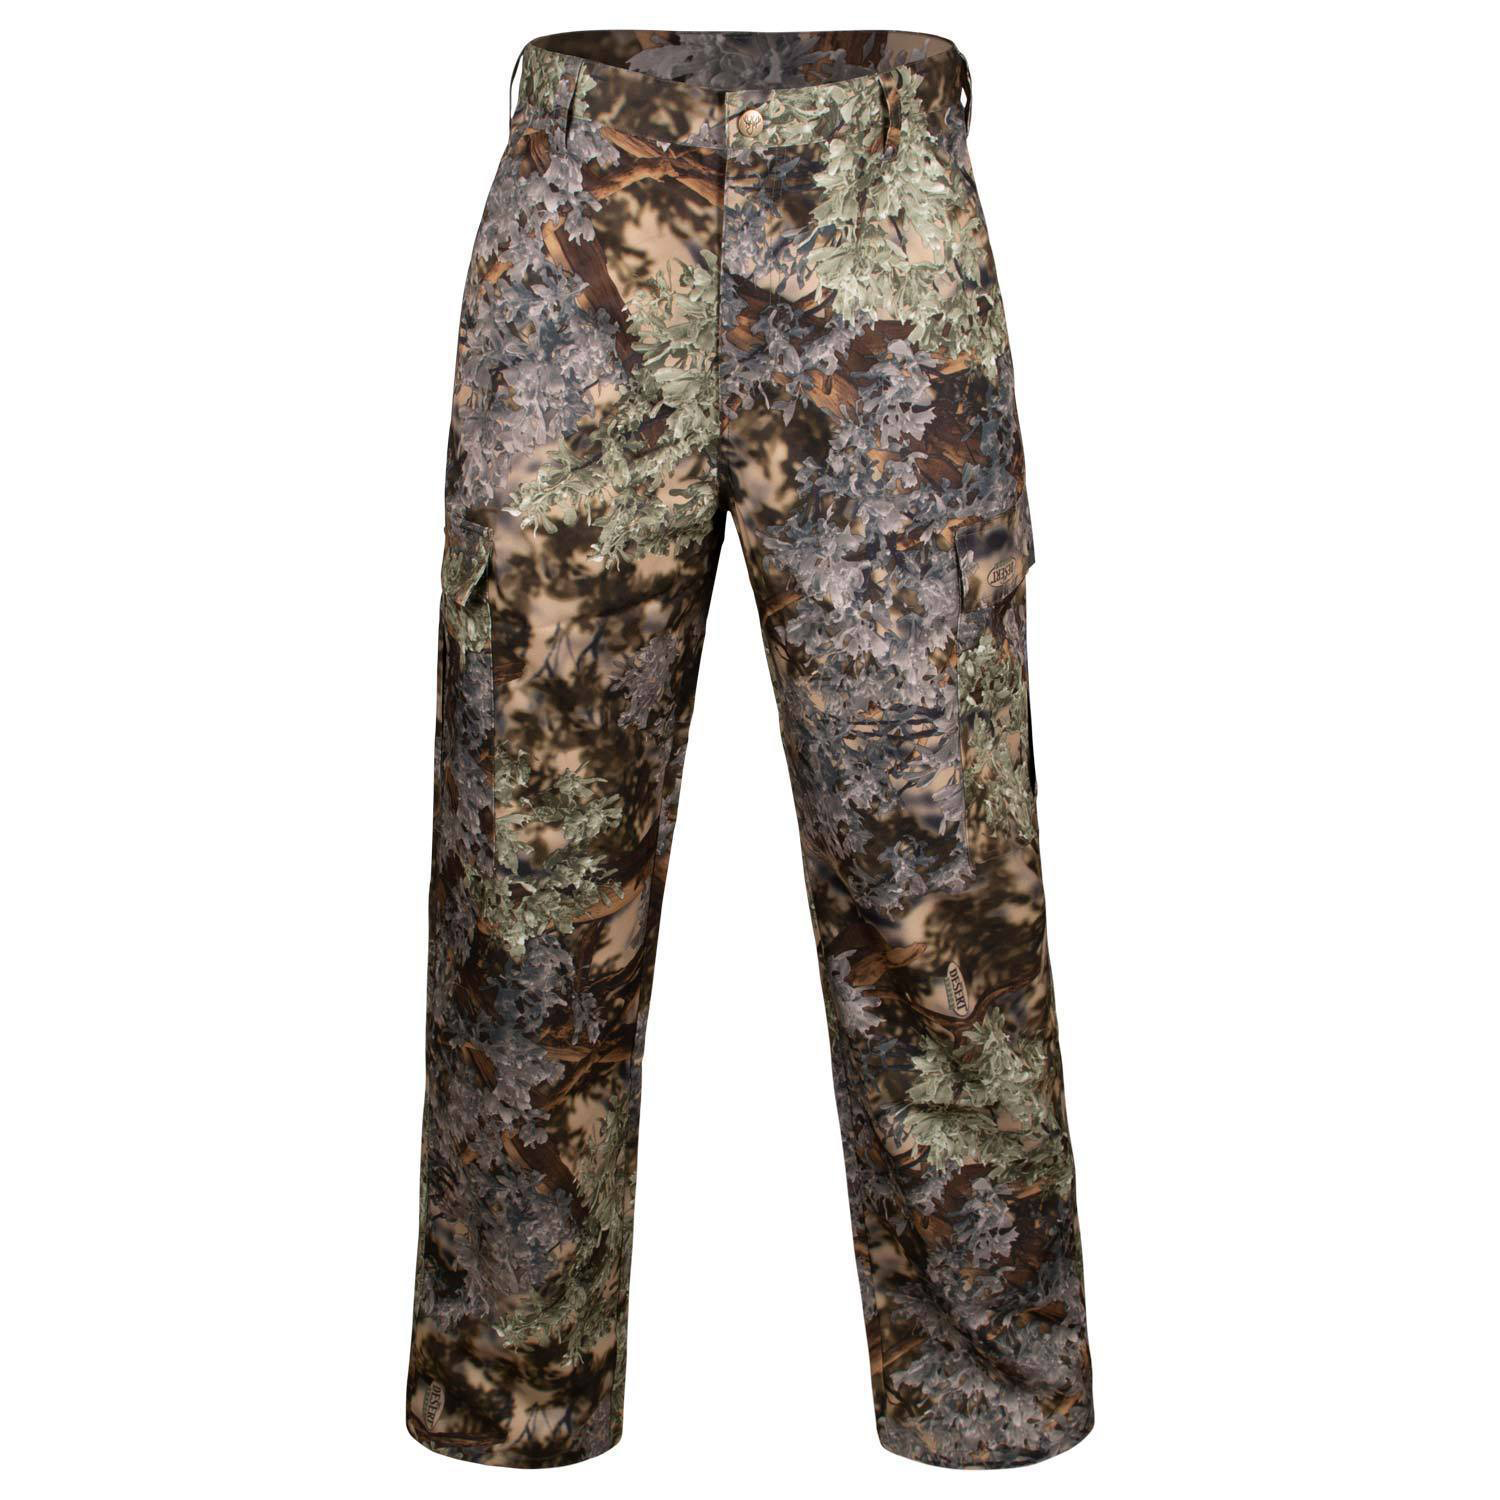 King's Camo Men's Hunter Series Pant